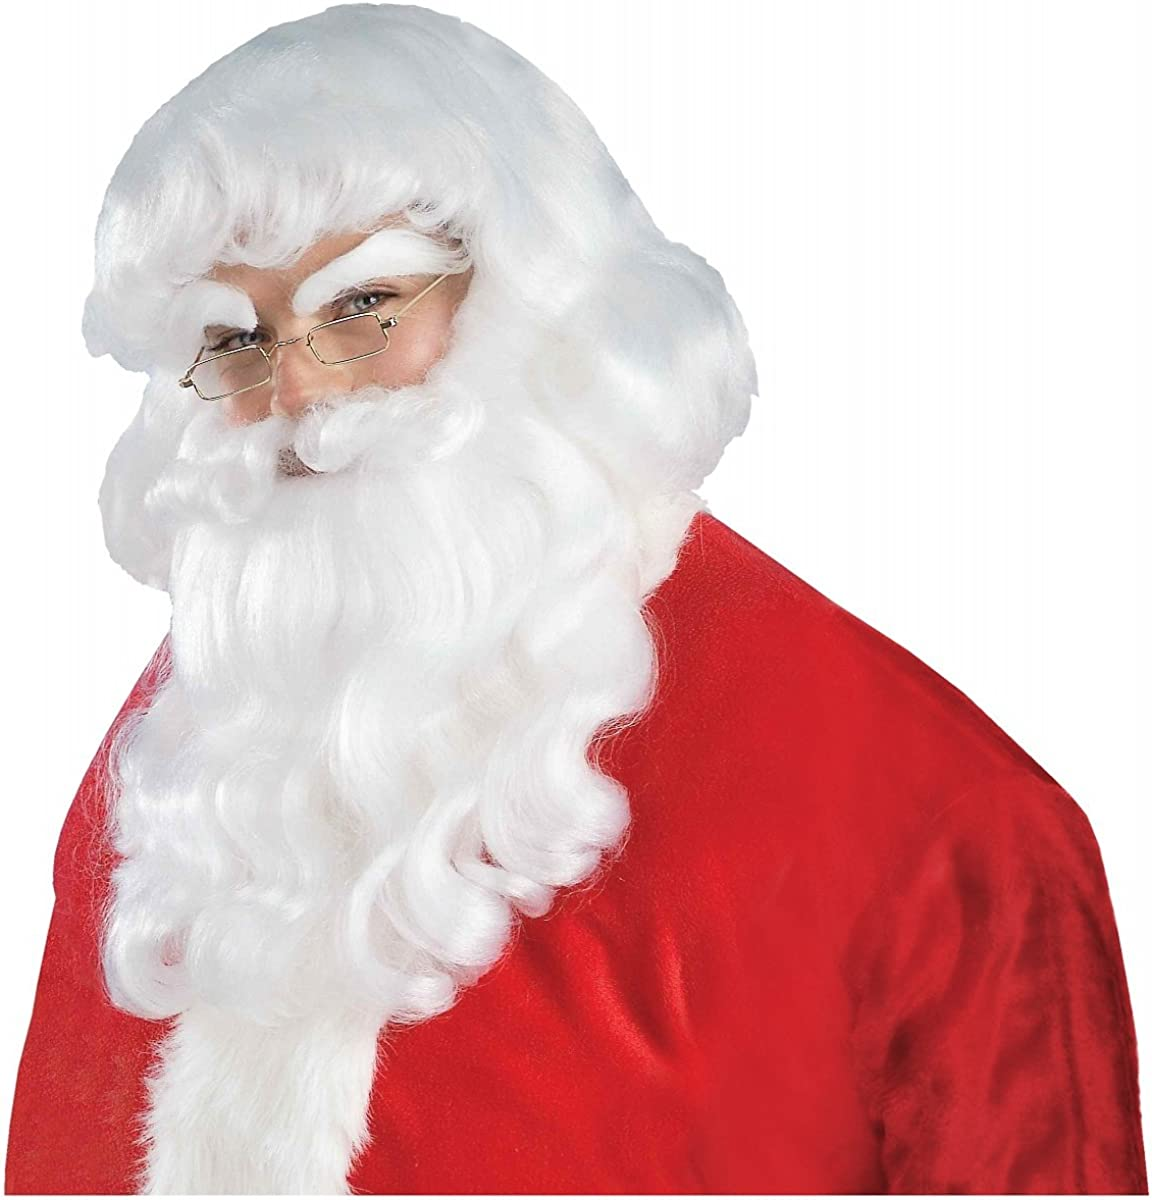 SANTA CLAUS WIG MOUSTACHE AND BEARD SET HOLIDAY ADULT COSTUME ACCESSORY